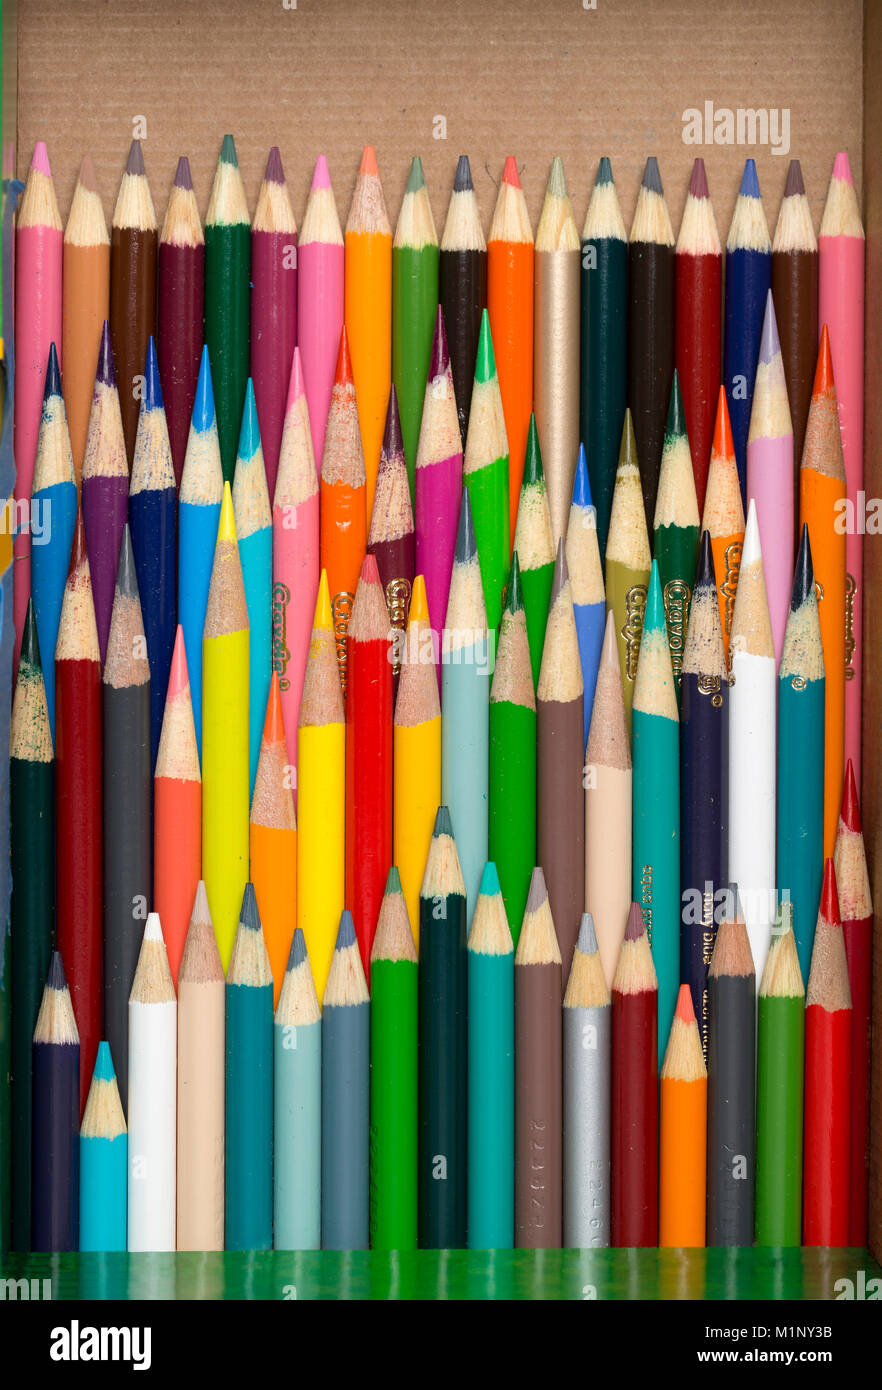 A box of used color pencils at various lengths and colors - Stock Image